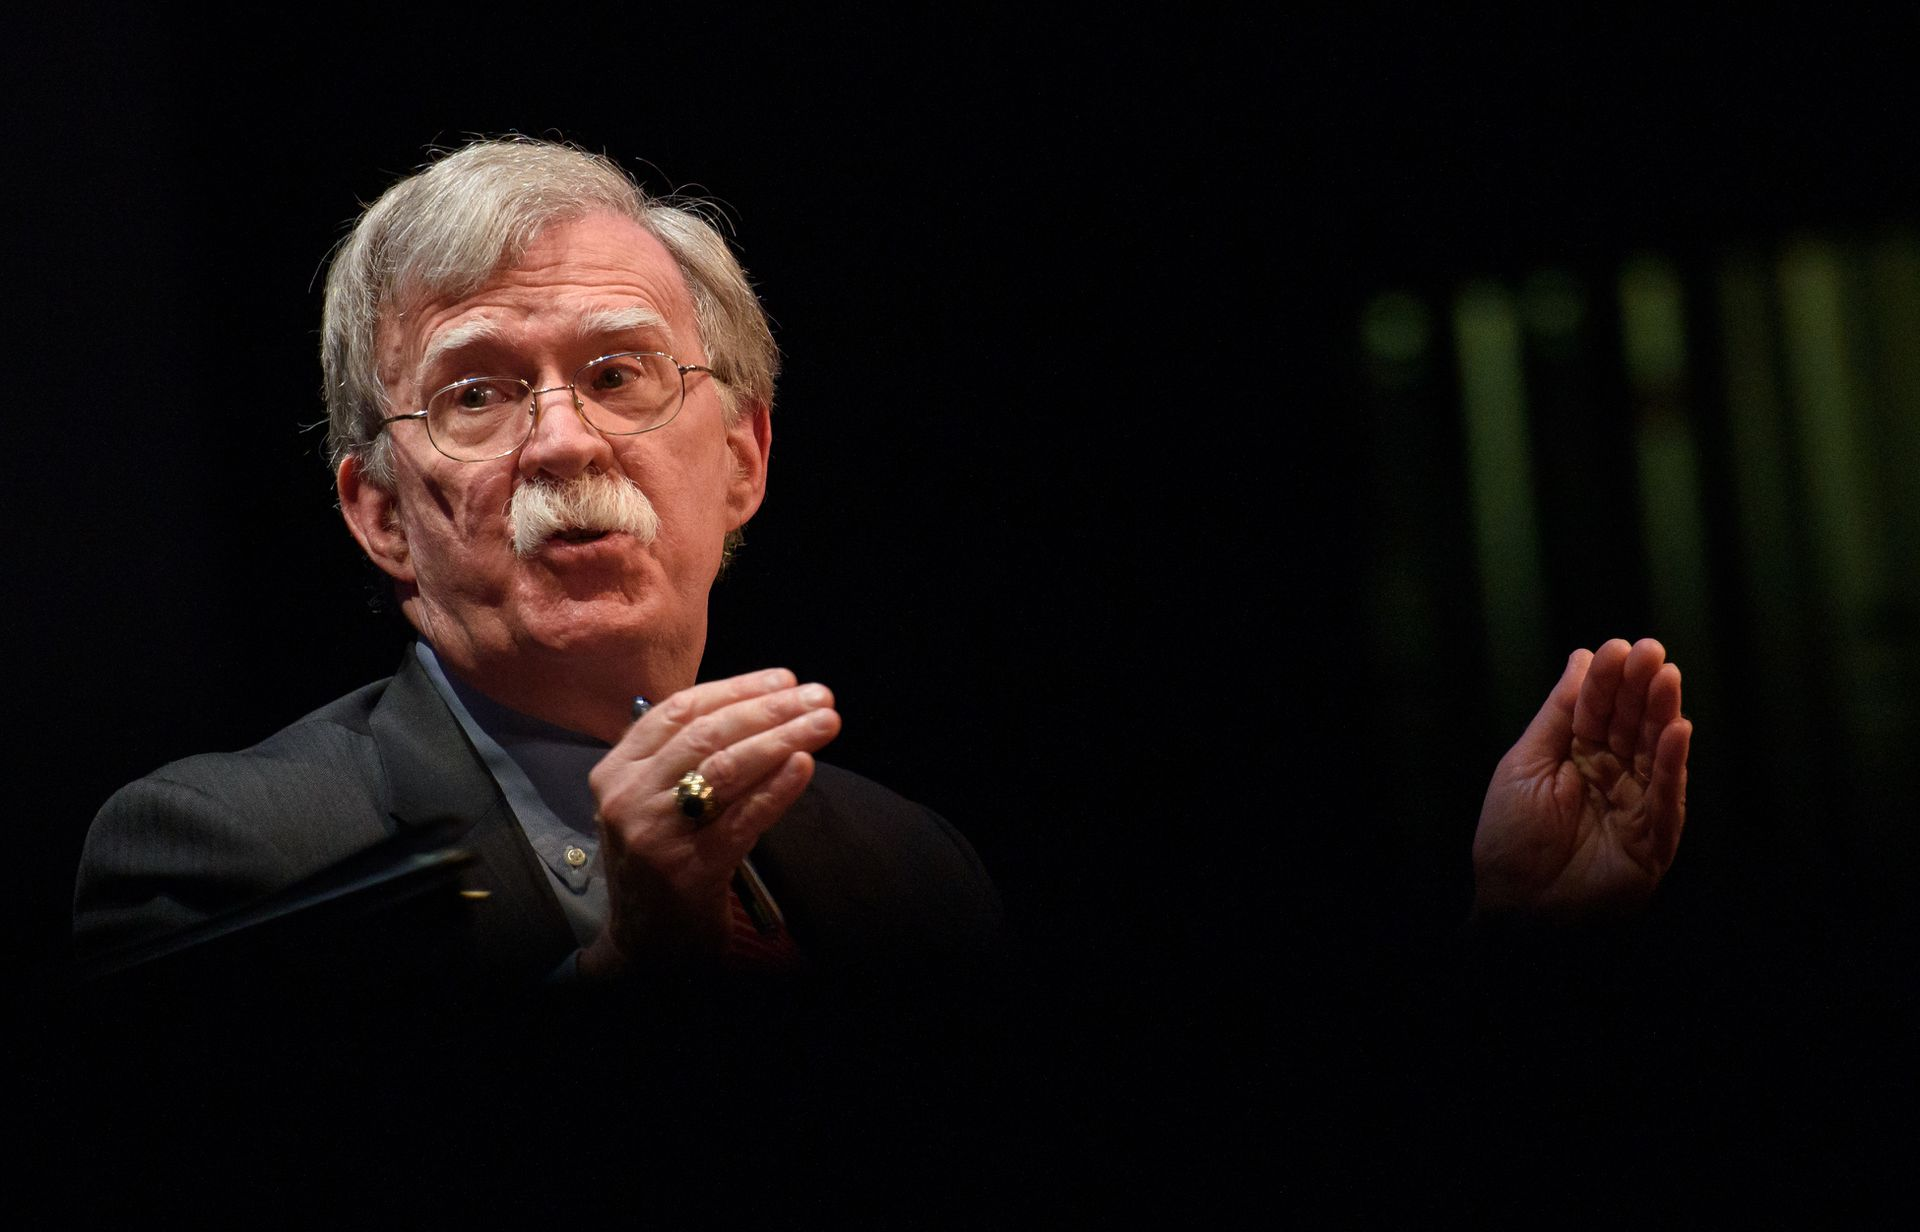 Trump administration sues to block publication of John Bolton's book thumbnail